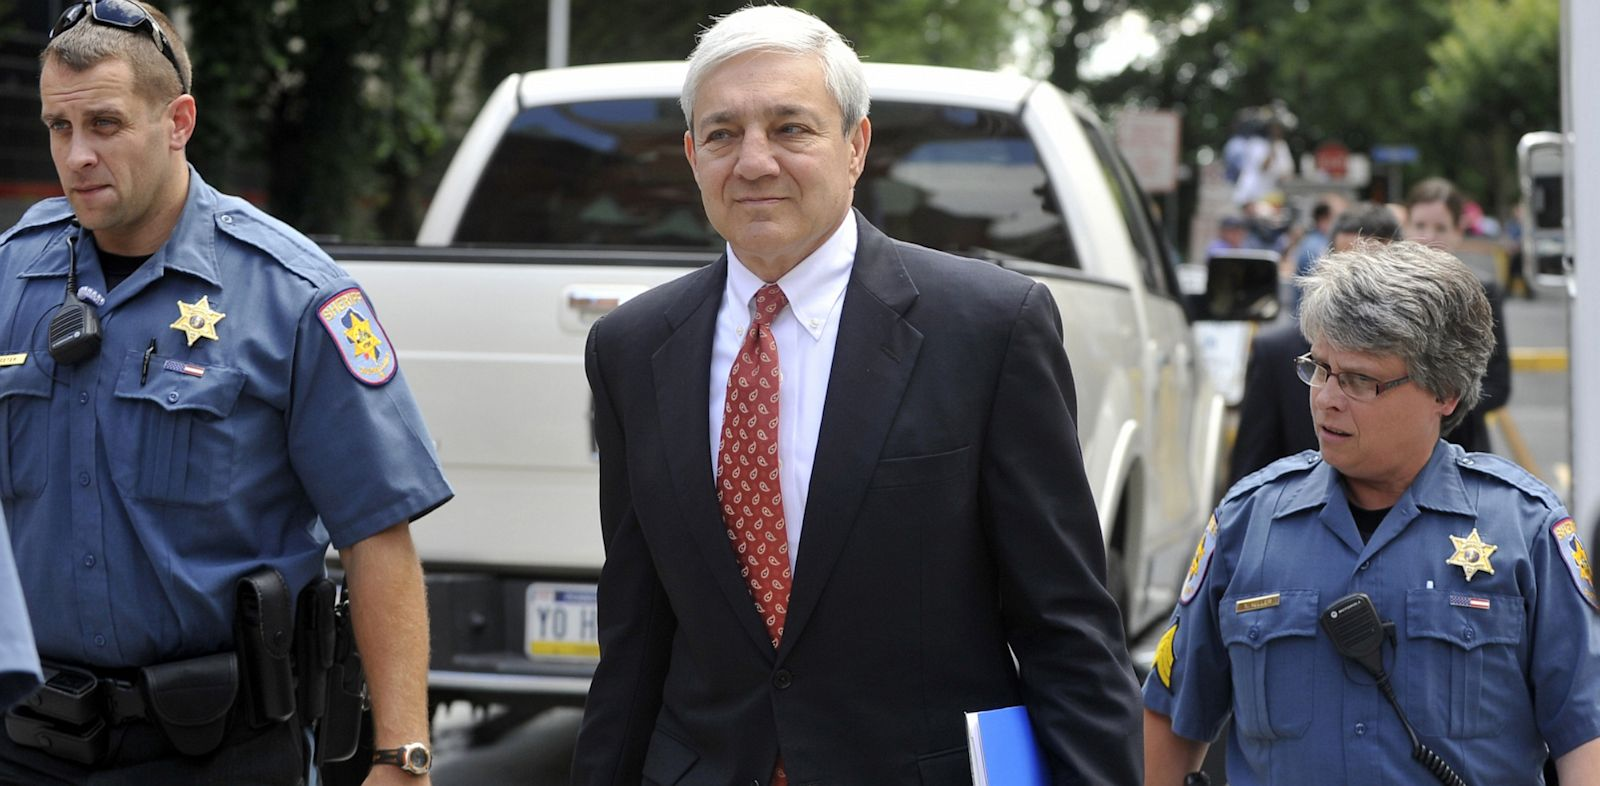 PHOTO: Former Penn State president Graham Spanier